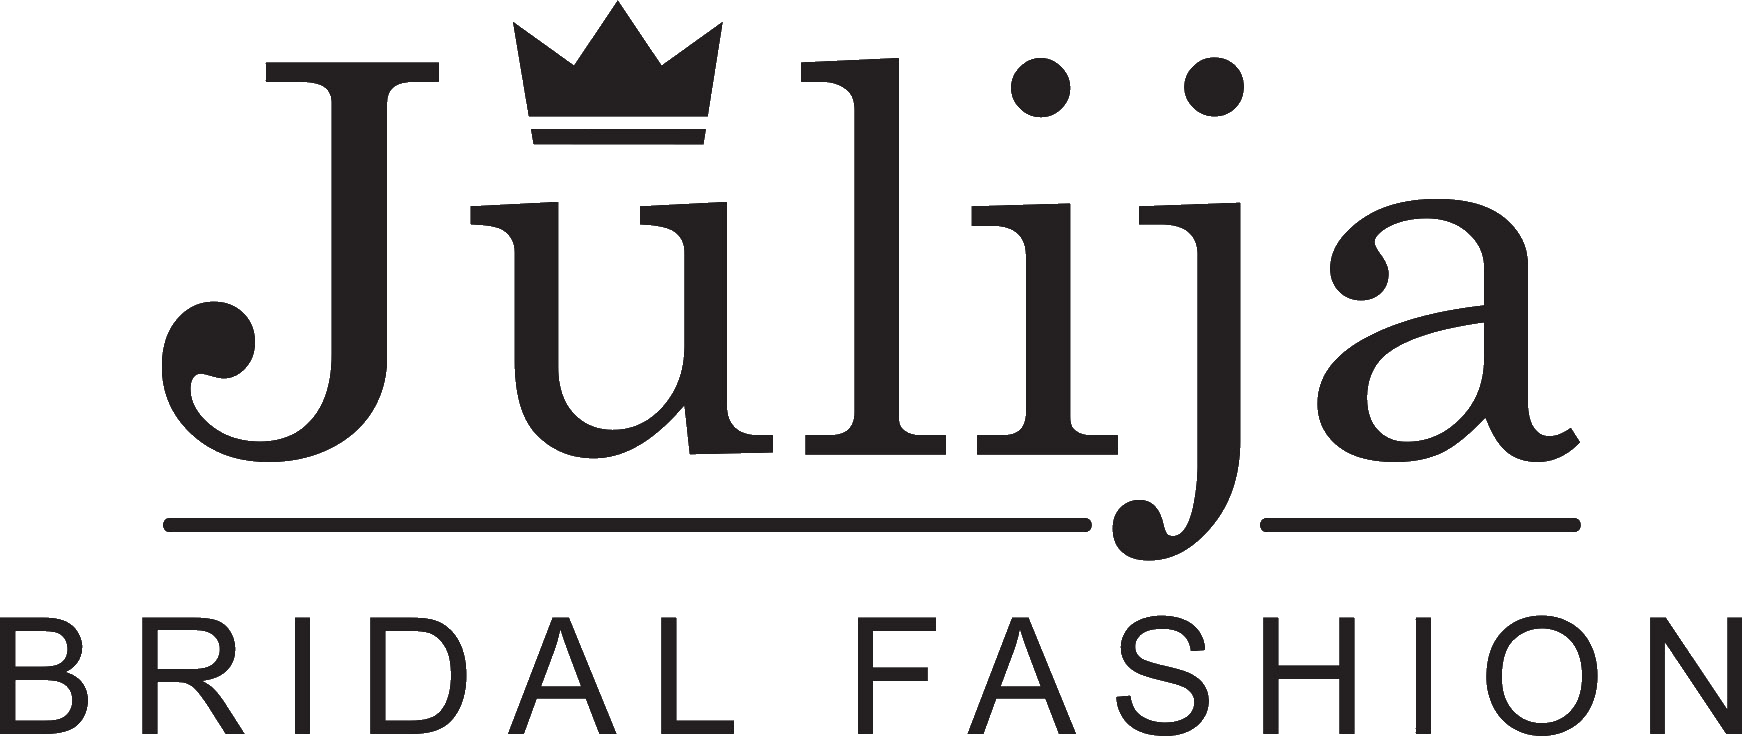 Bridal, wedding dresses designer - Julija Bridal Fashion